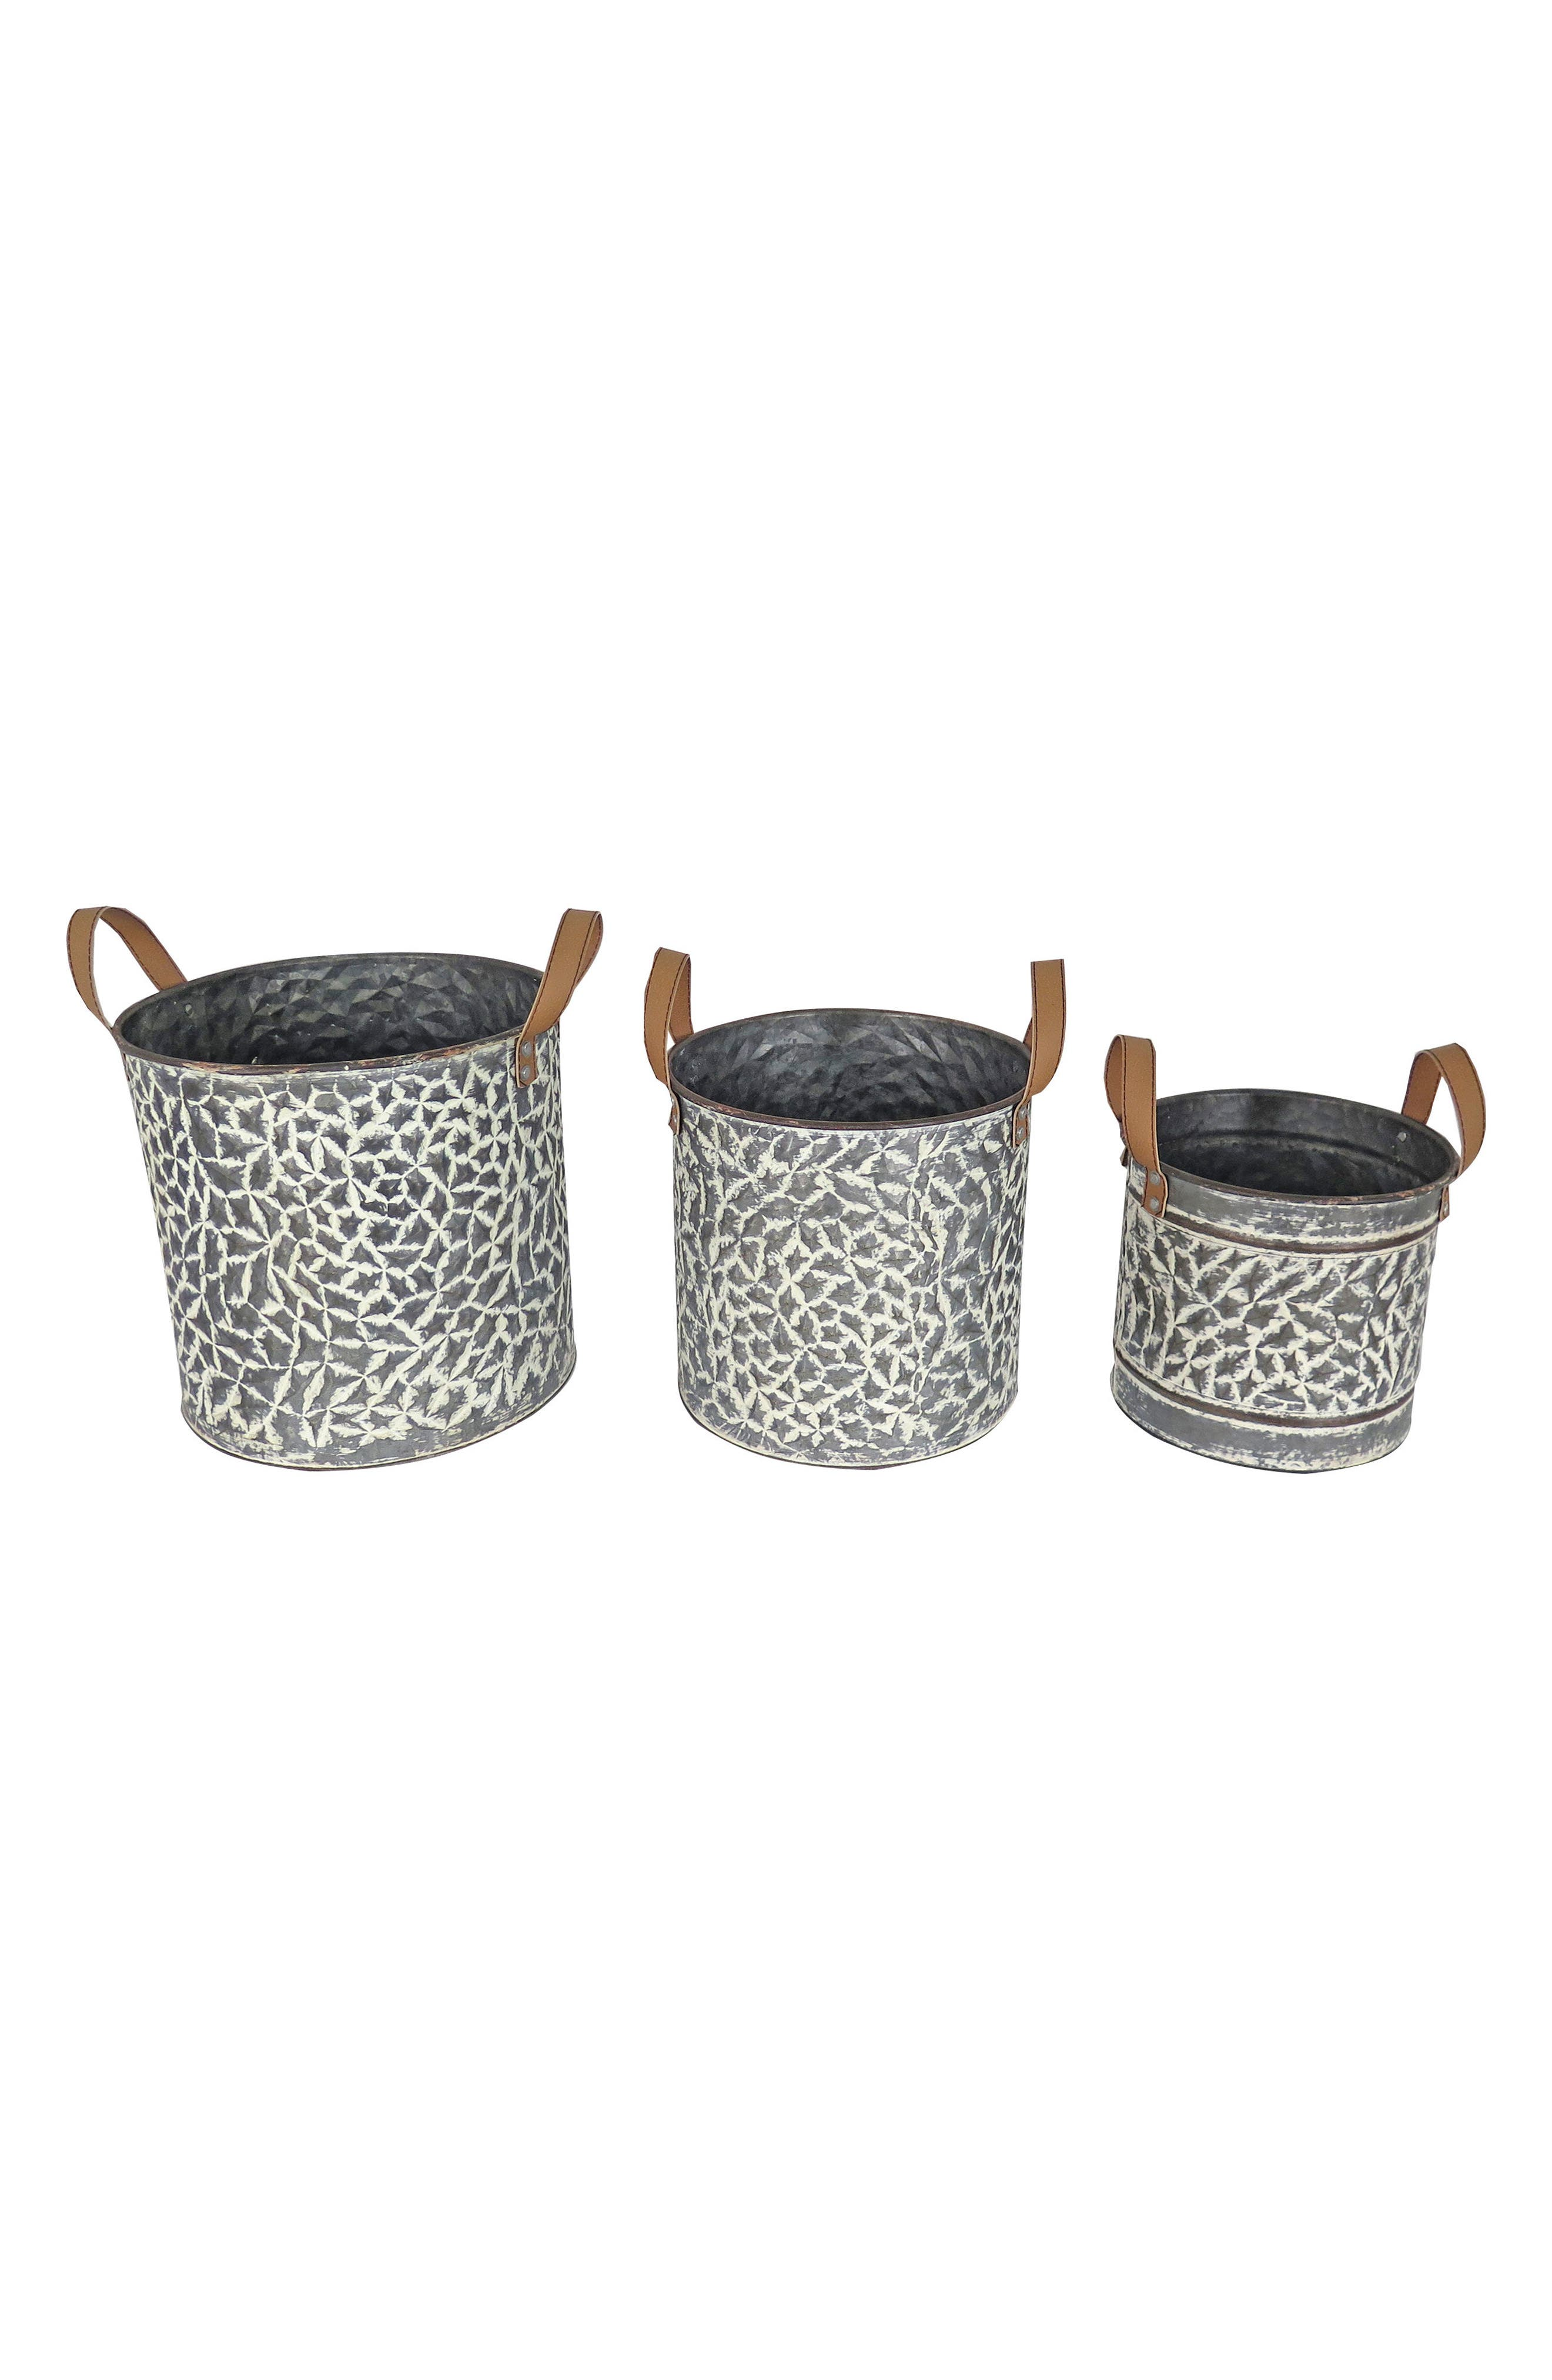 Langford Set of 3 Buckets,                         Main,                         color, Metal/ Faux Leather